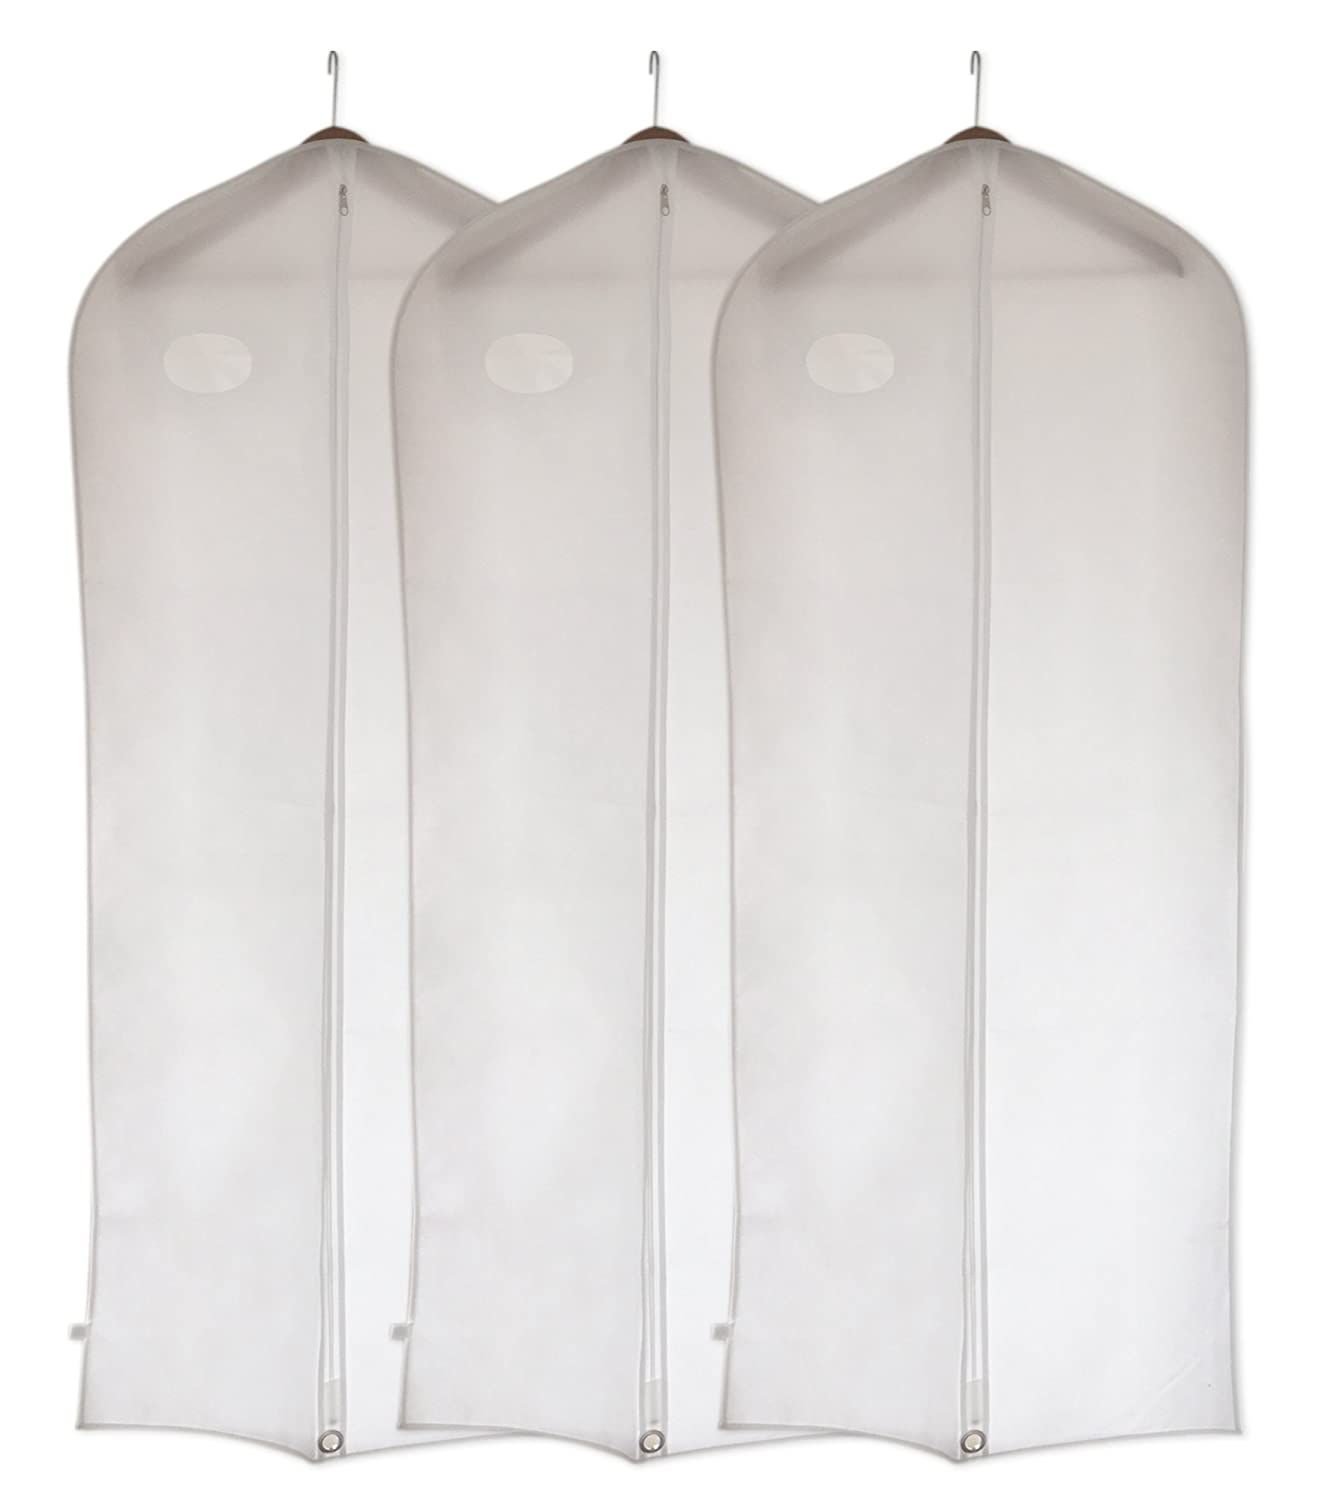 Garment Covers Bags by DRYZEM Set of 3 White Long Breathable Covers for Suits, Shirts, Gowns and Dresses 2 Year Warranty CAJCOM Ltd